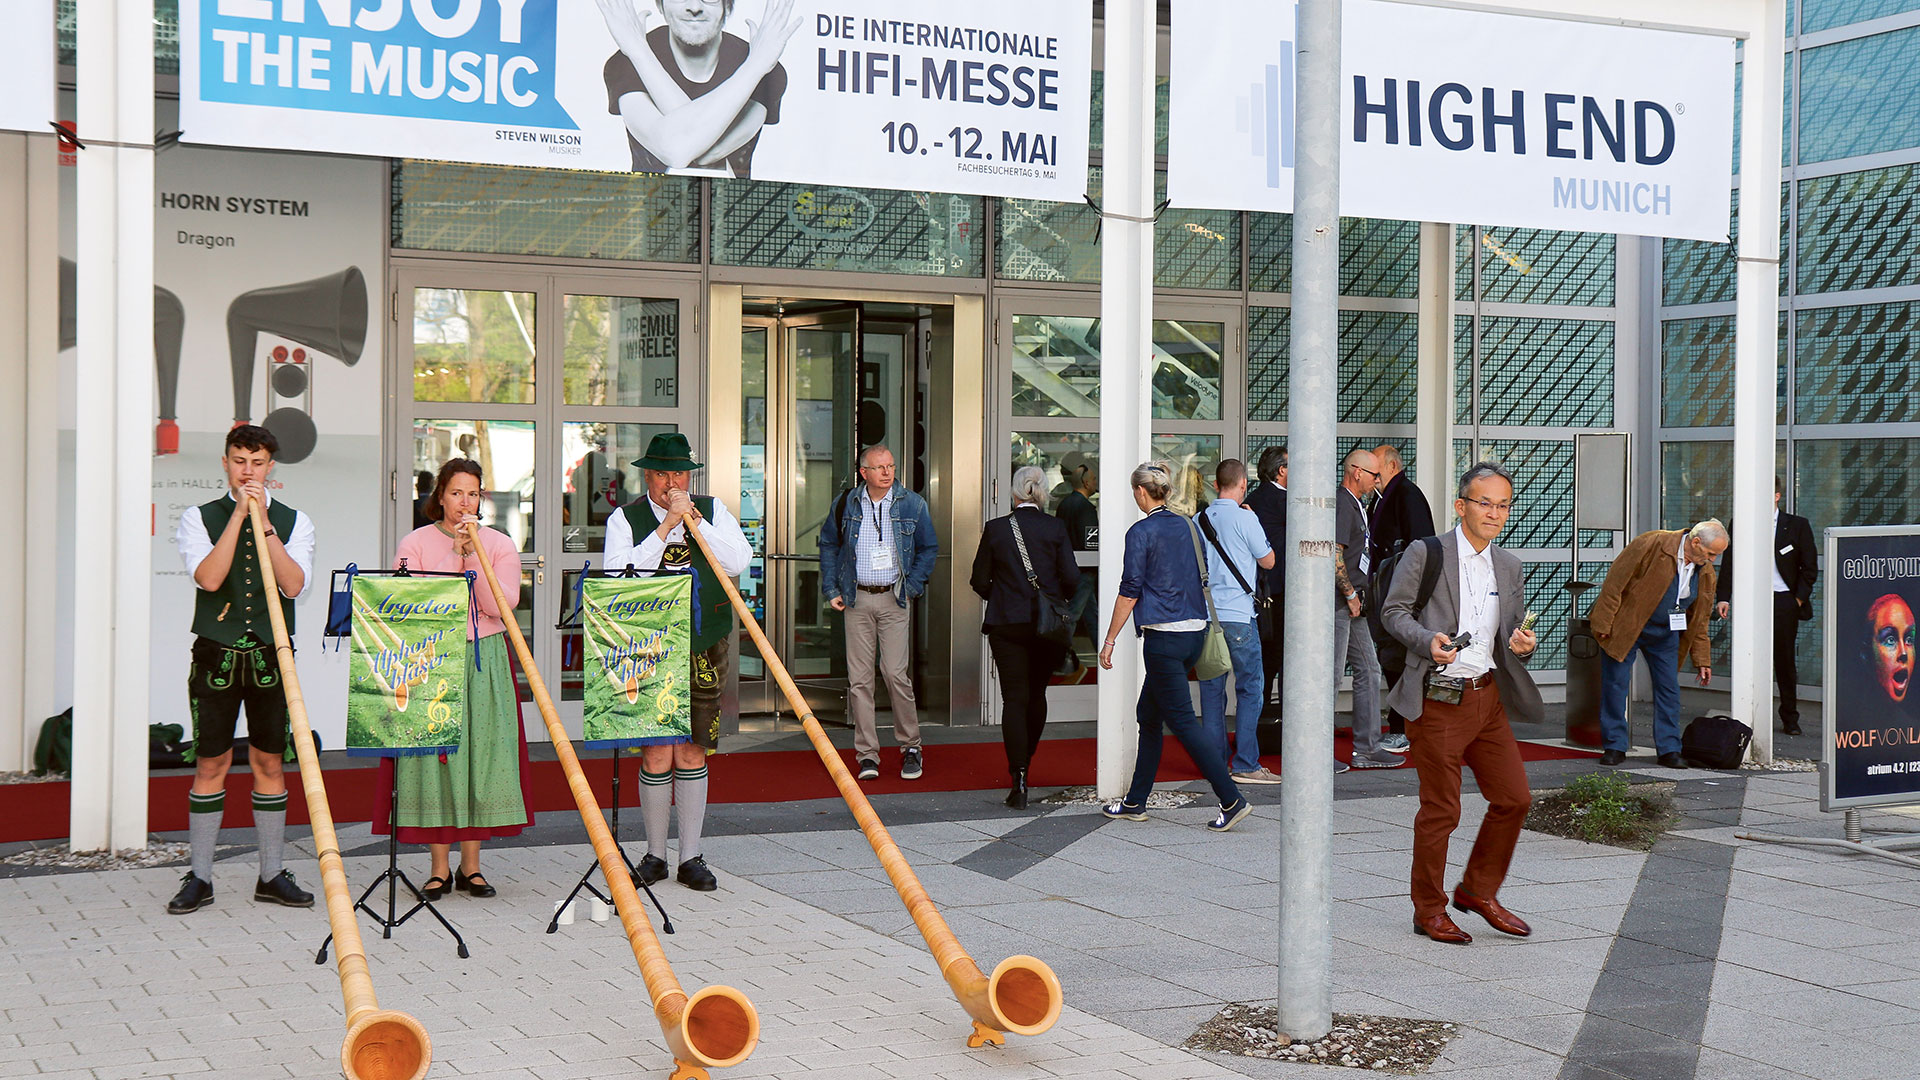 Not even the alphorn players could hide the fact that the High End has been becoming more and more international – English is now the language of choice.